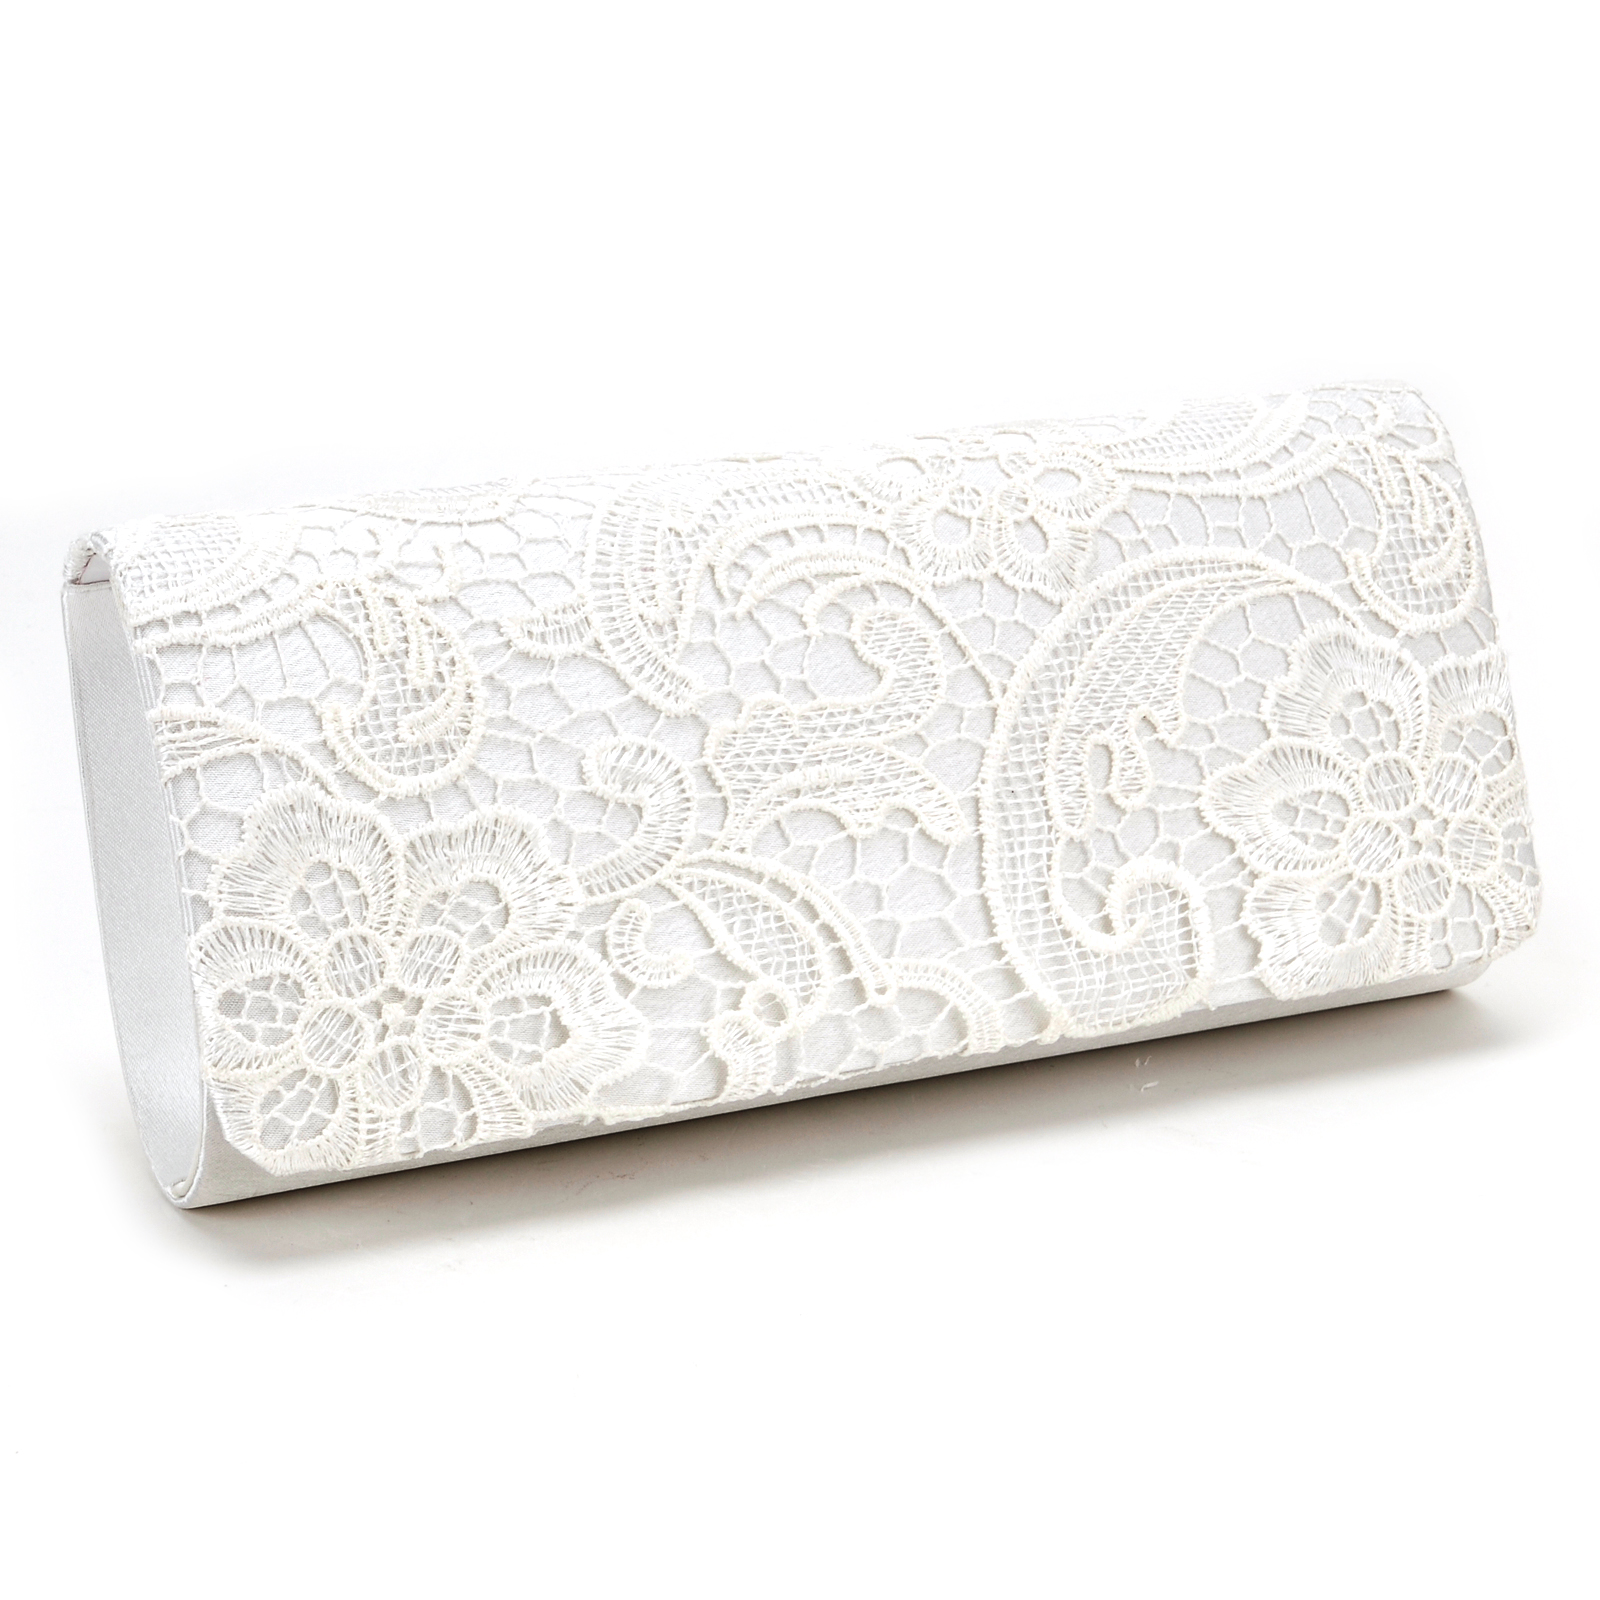 1c7033a2f959 Black White Navy Blue Floral Lace Evening Party Clutch Bag Bridal .